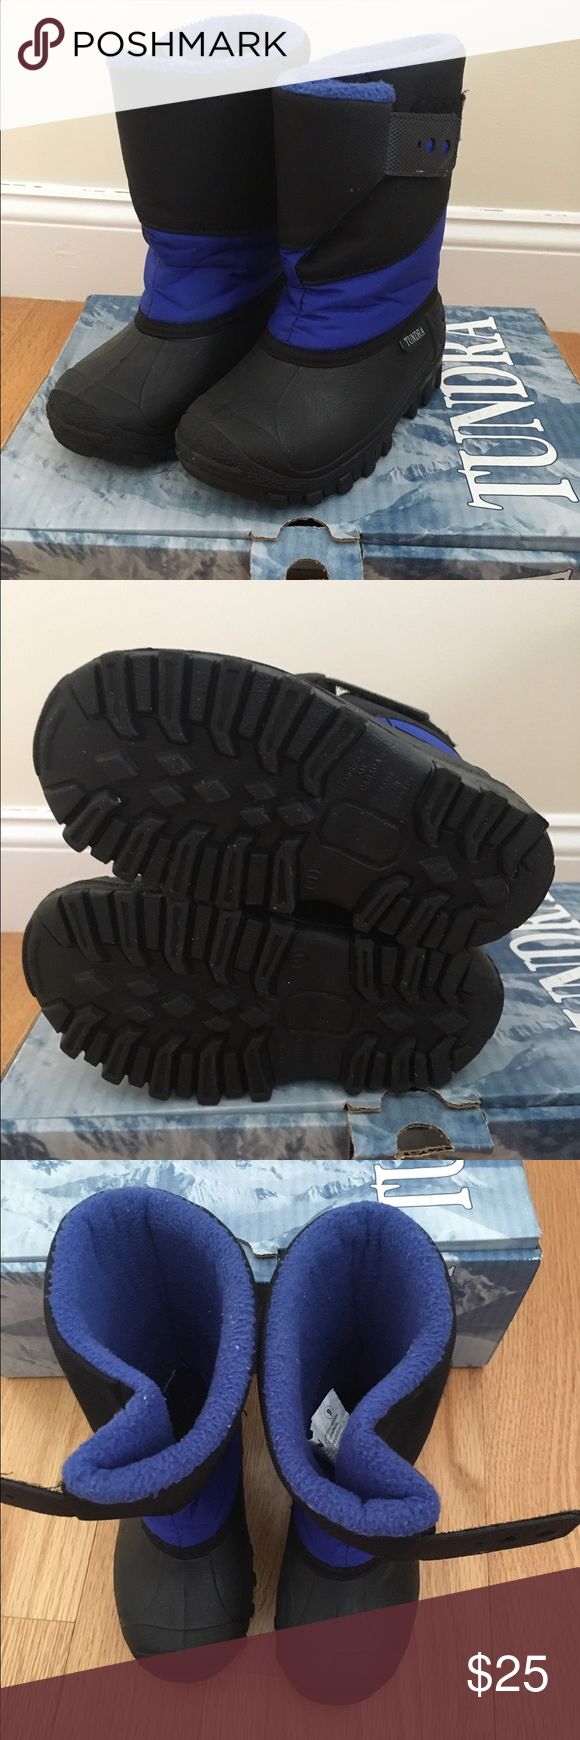 Size 9 Tundra Snow Boots Gently used Tundra Snowboots. Size 9. Velcro closure. Tundra Shoes Rain & Snow Boots